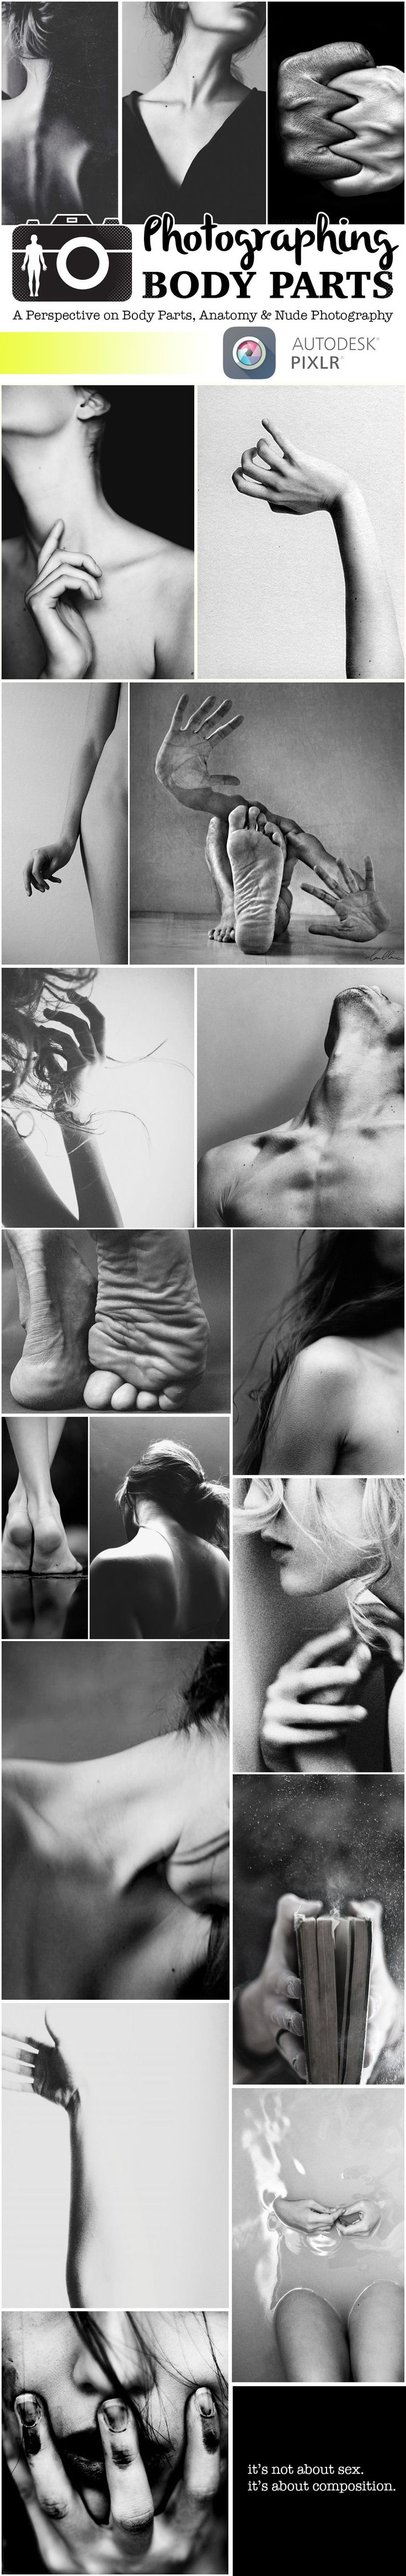 Photos of body parts can be sexy. Or boring and everyday, depending on the editing choices you make. Body parts can be more impactful than a facial portrait when composition and lighting are the key factors in your final cut. Facial segments, hands, feet, necklines, backlines, navel dips — any and all fragments of the human …